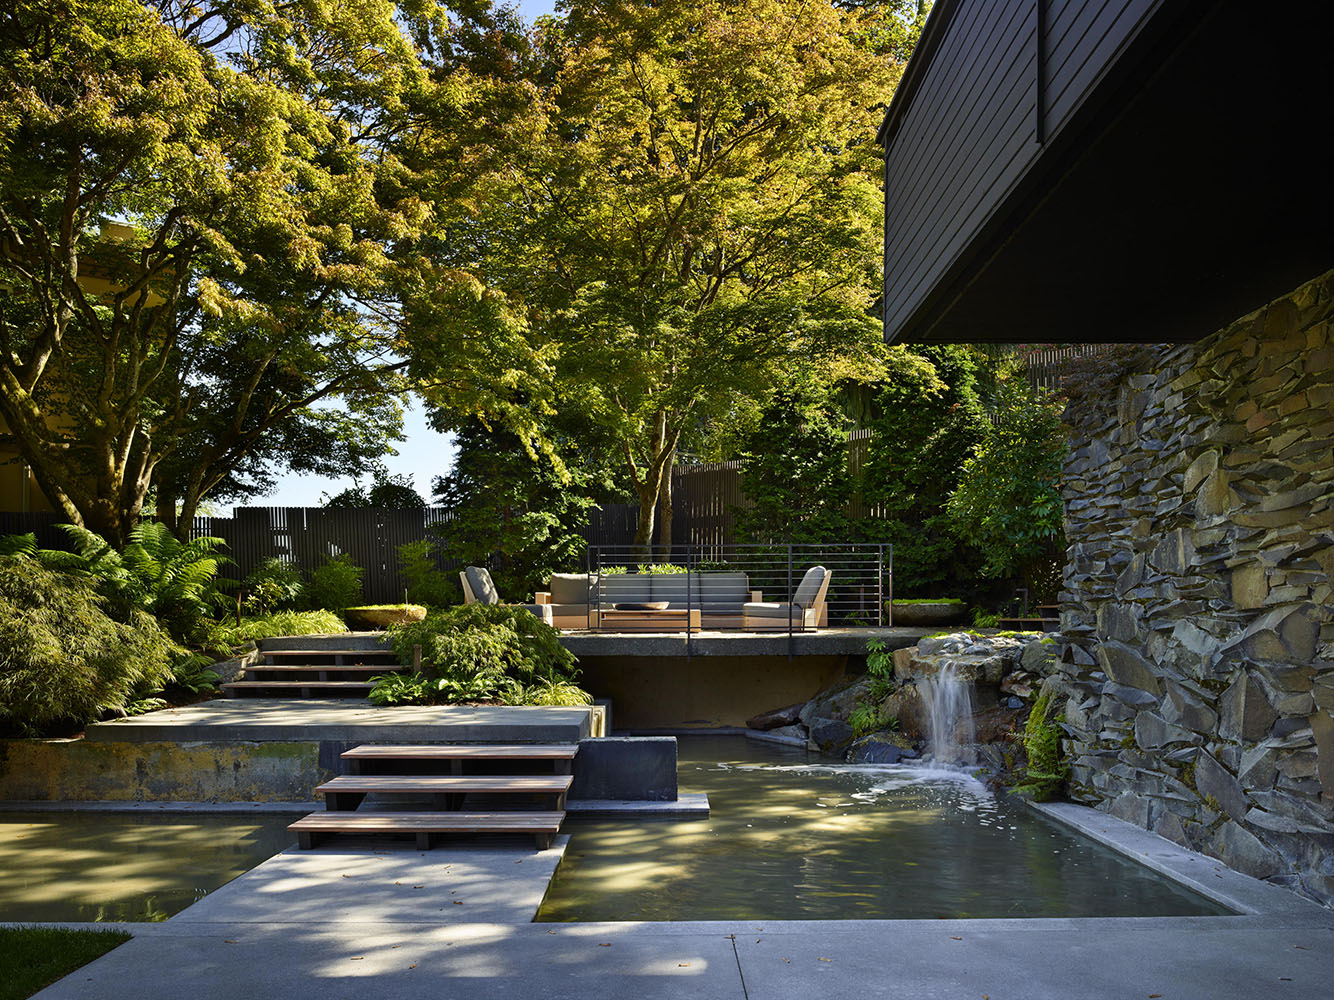 Modern additions such as a raised vegetable garden, water features and patios were added to fit the lifestyle of the client